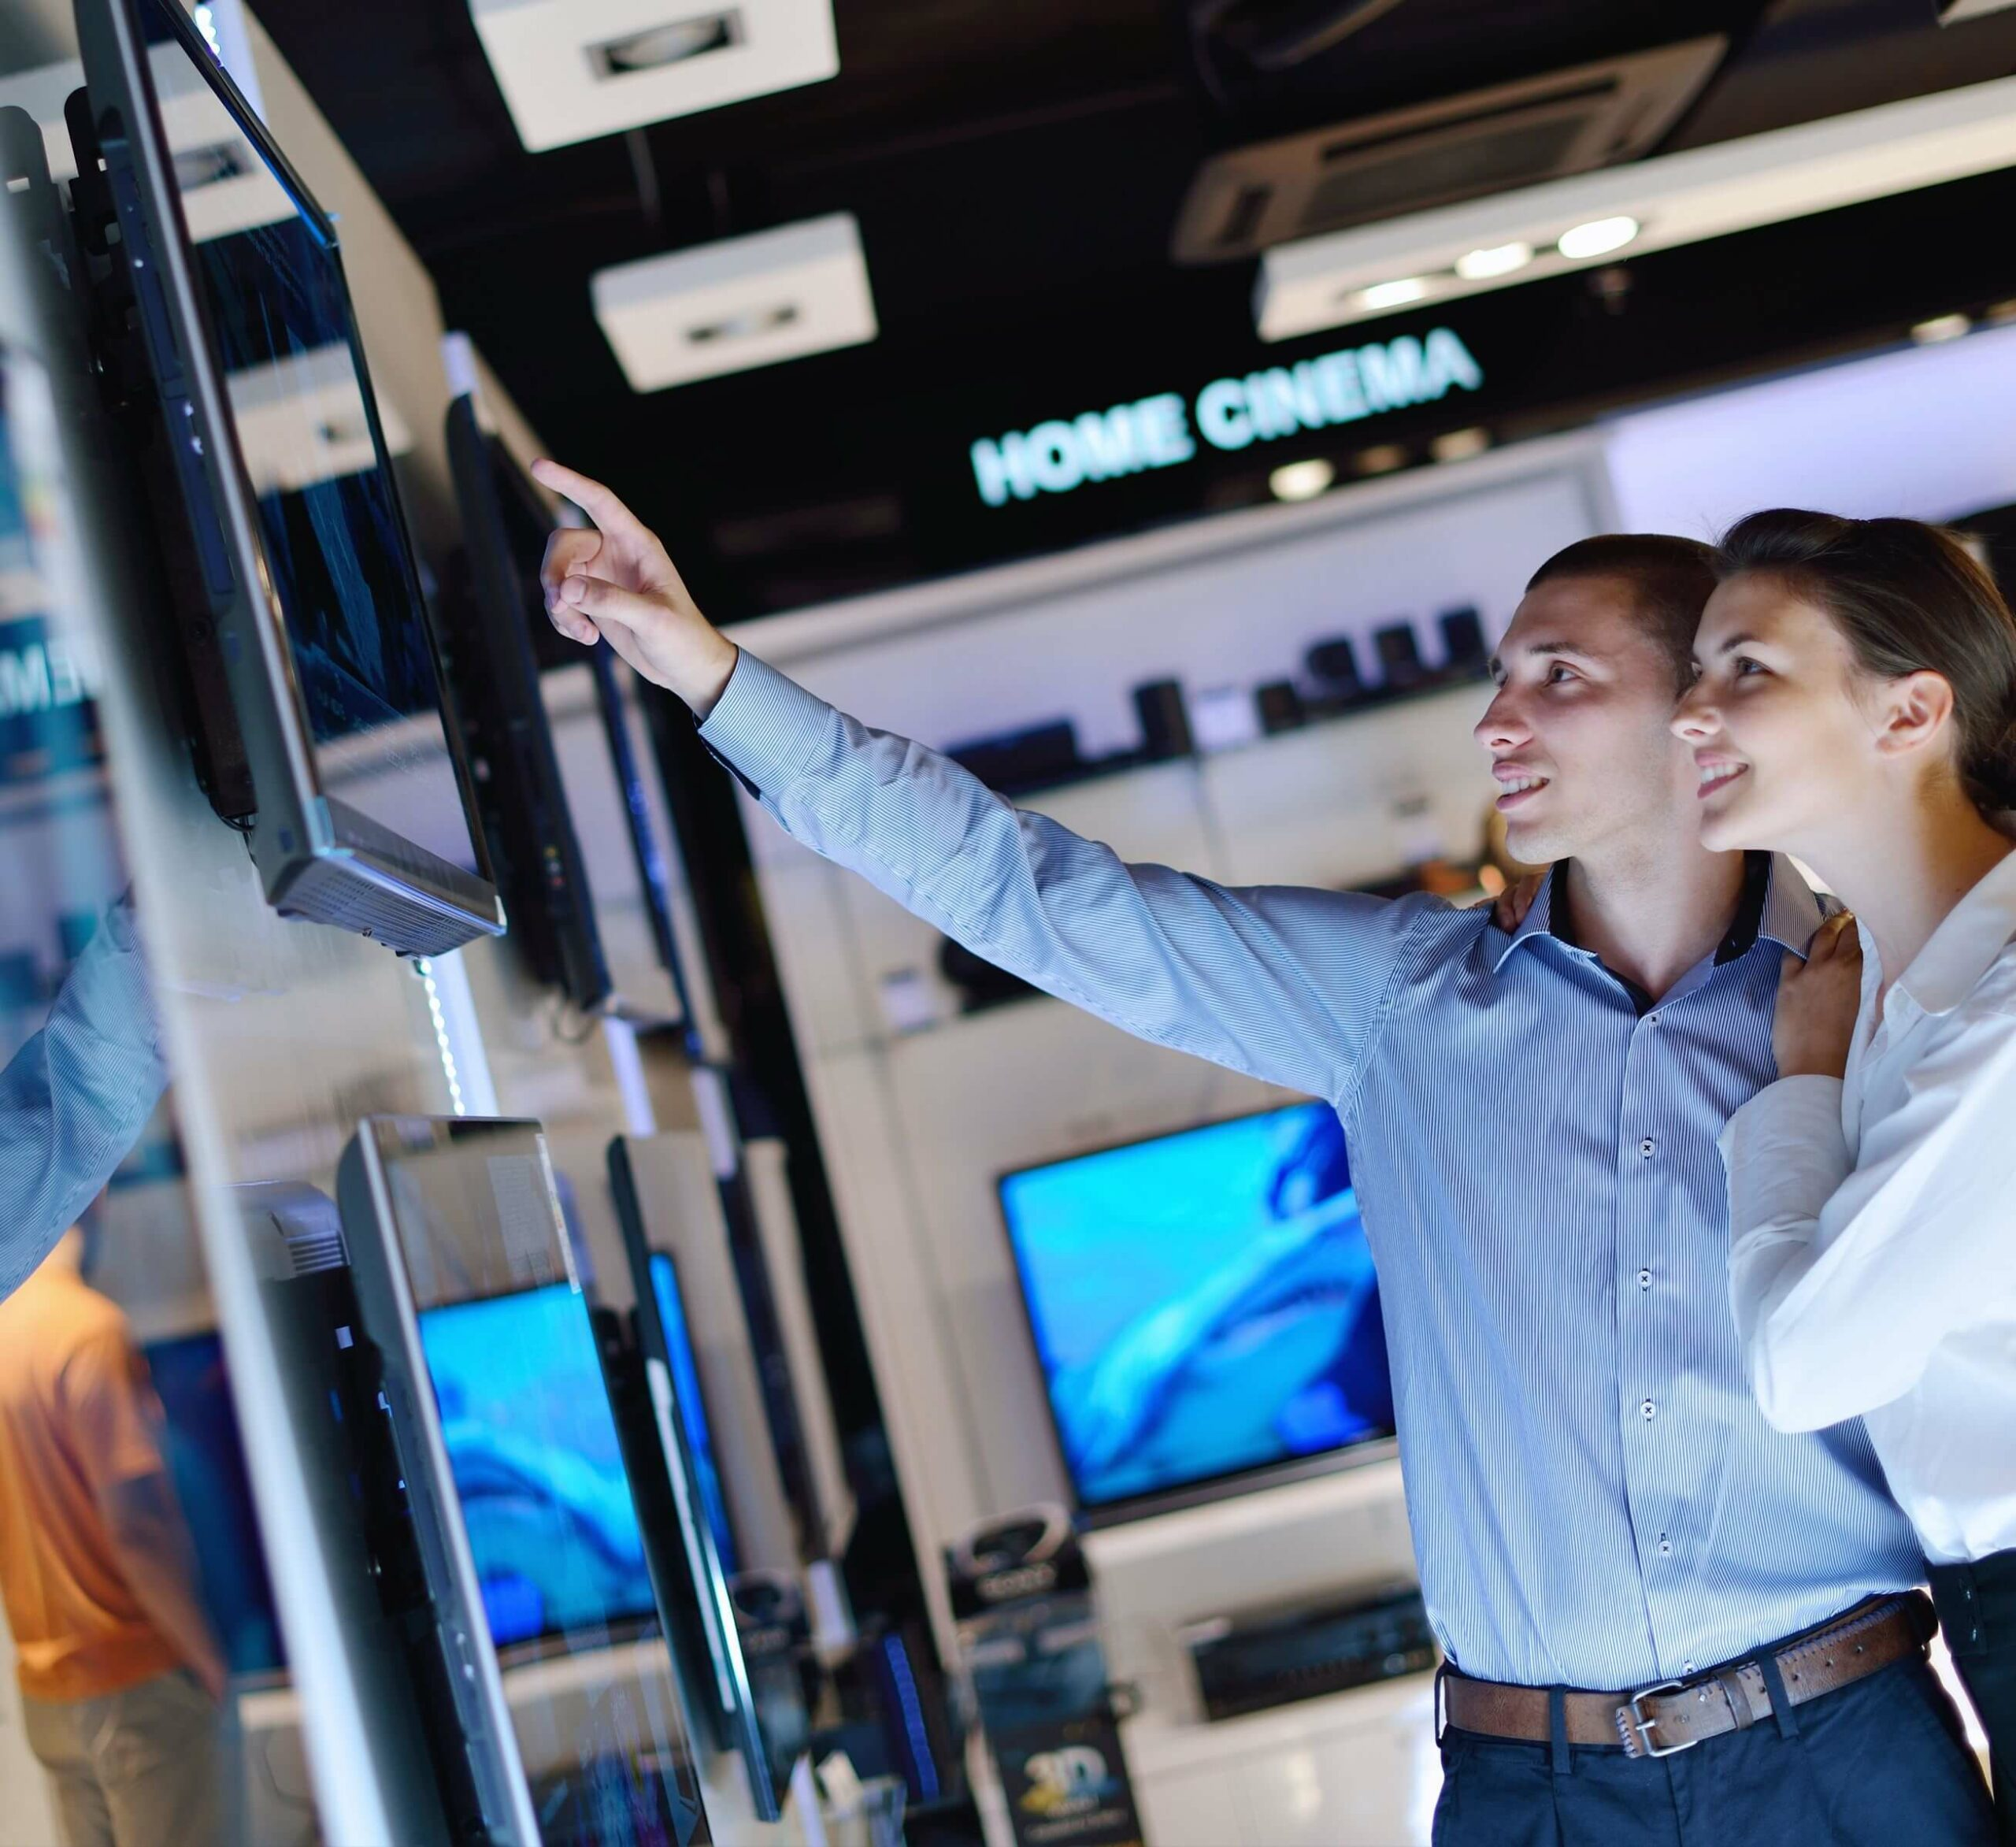 content management system in-store screens